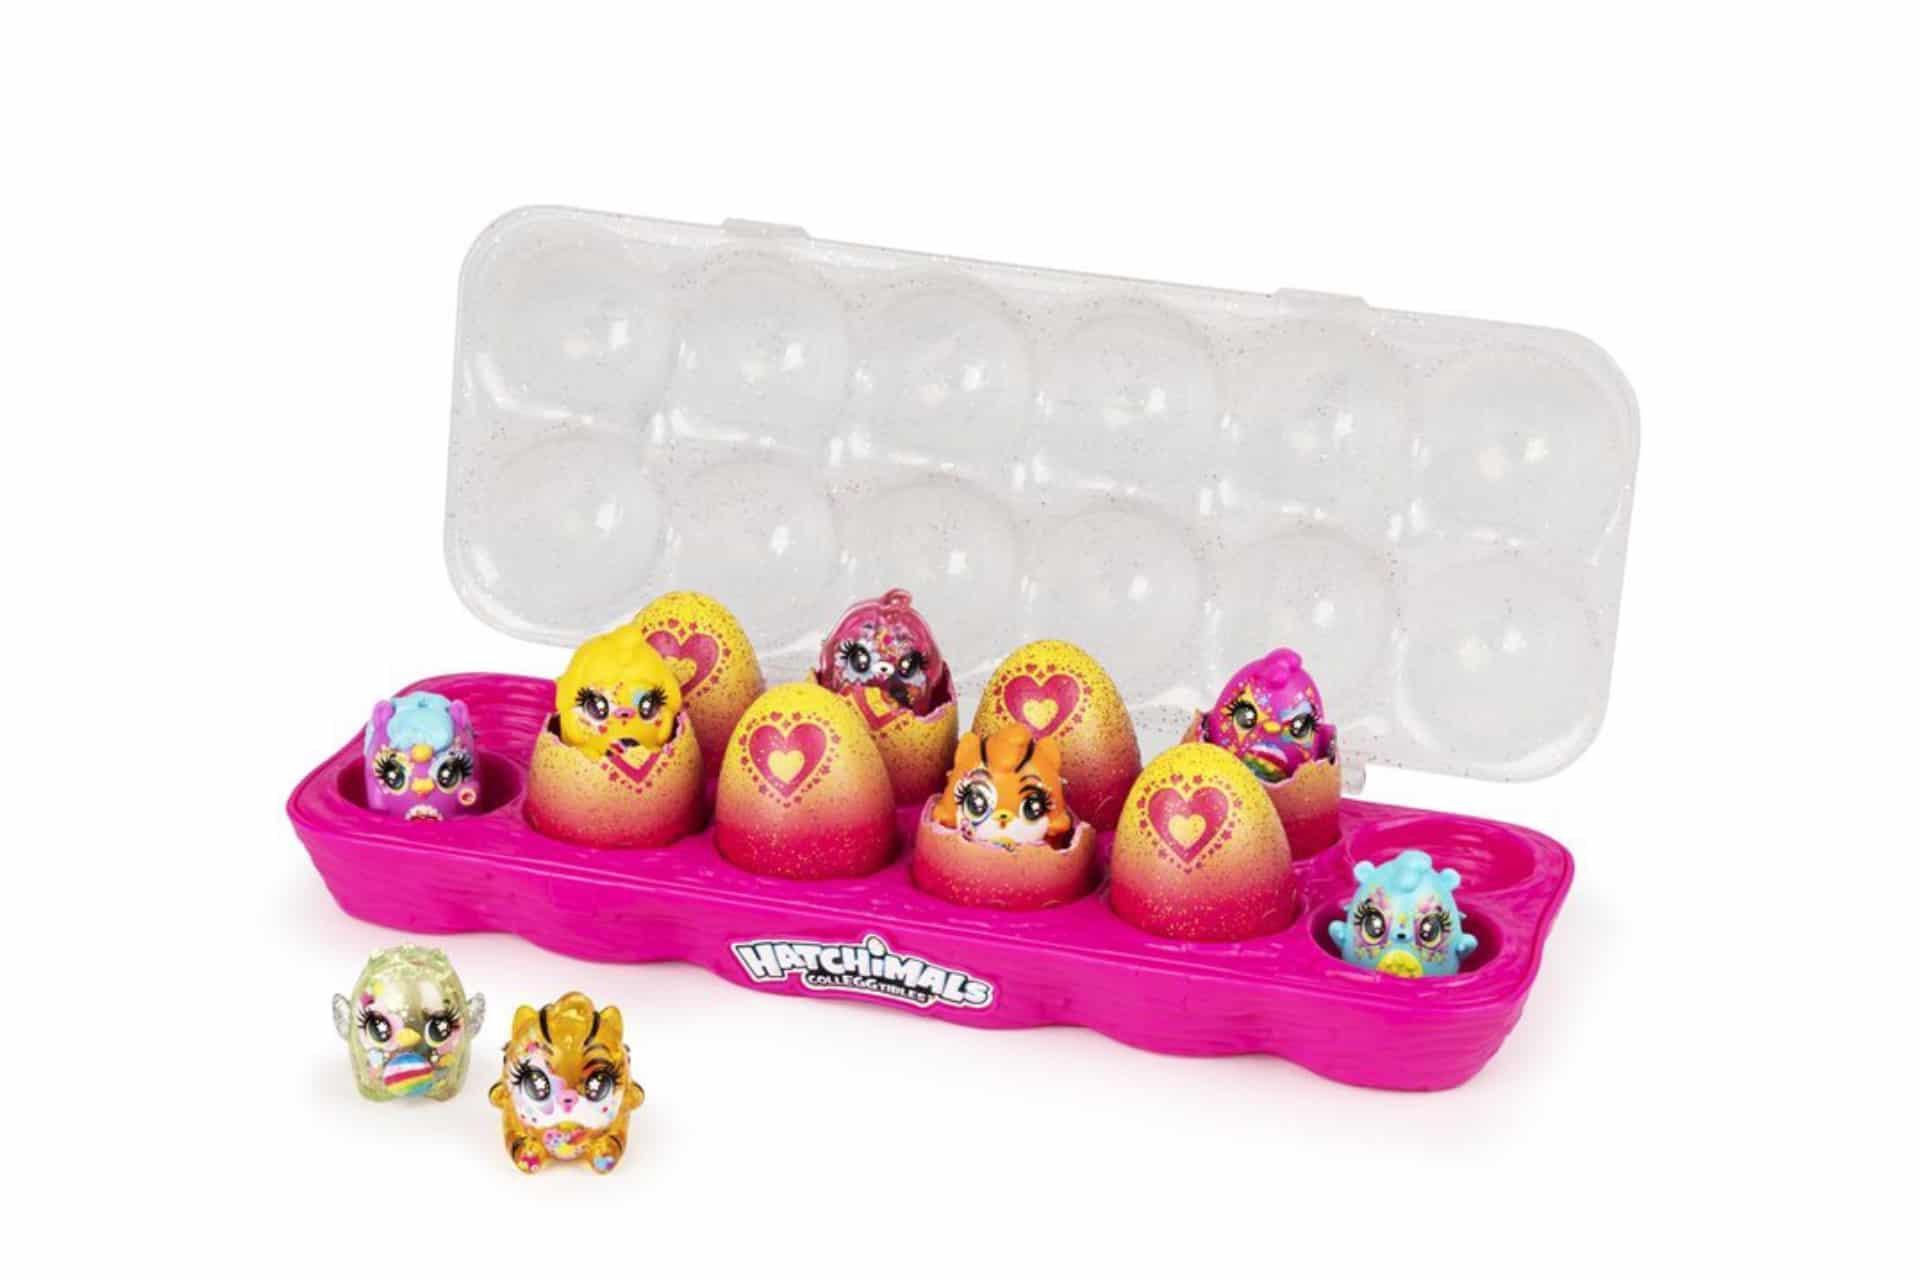 Plastic egg container with collectible figures inside shells